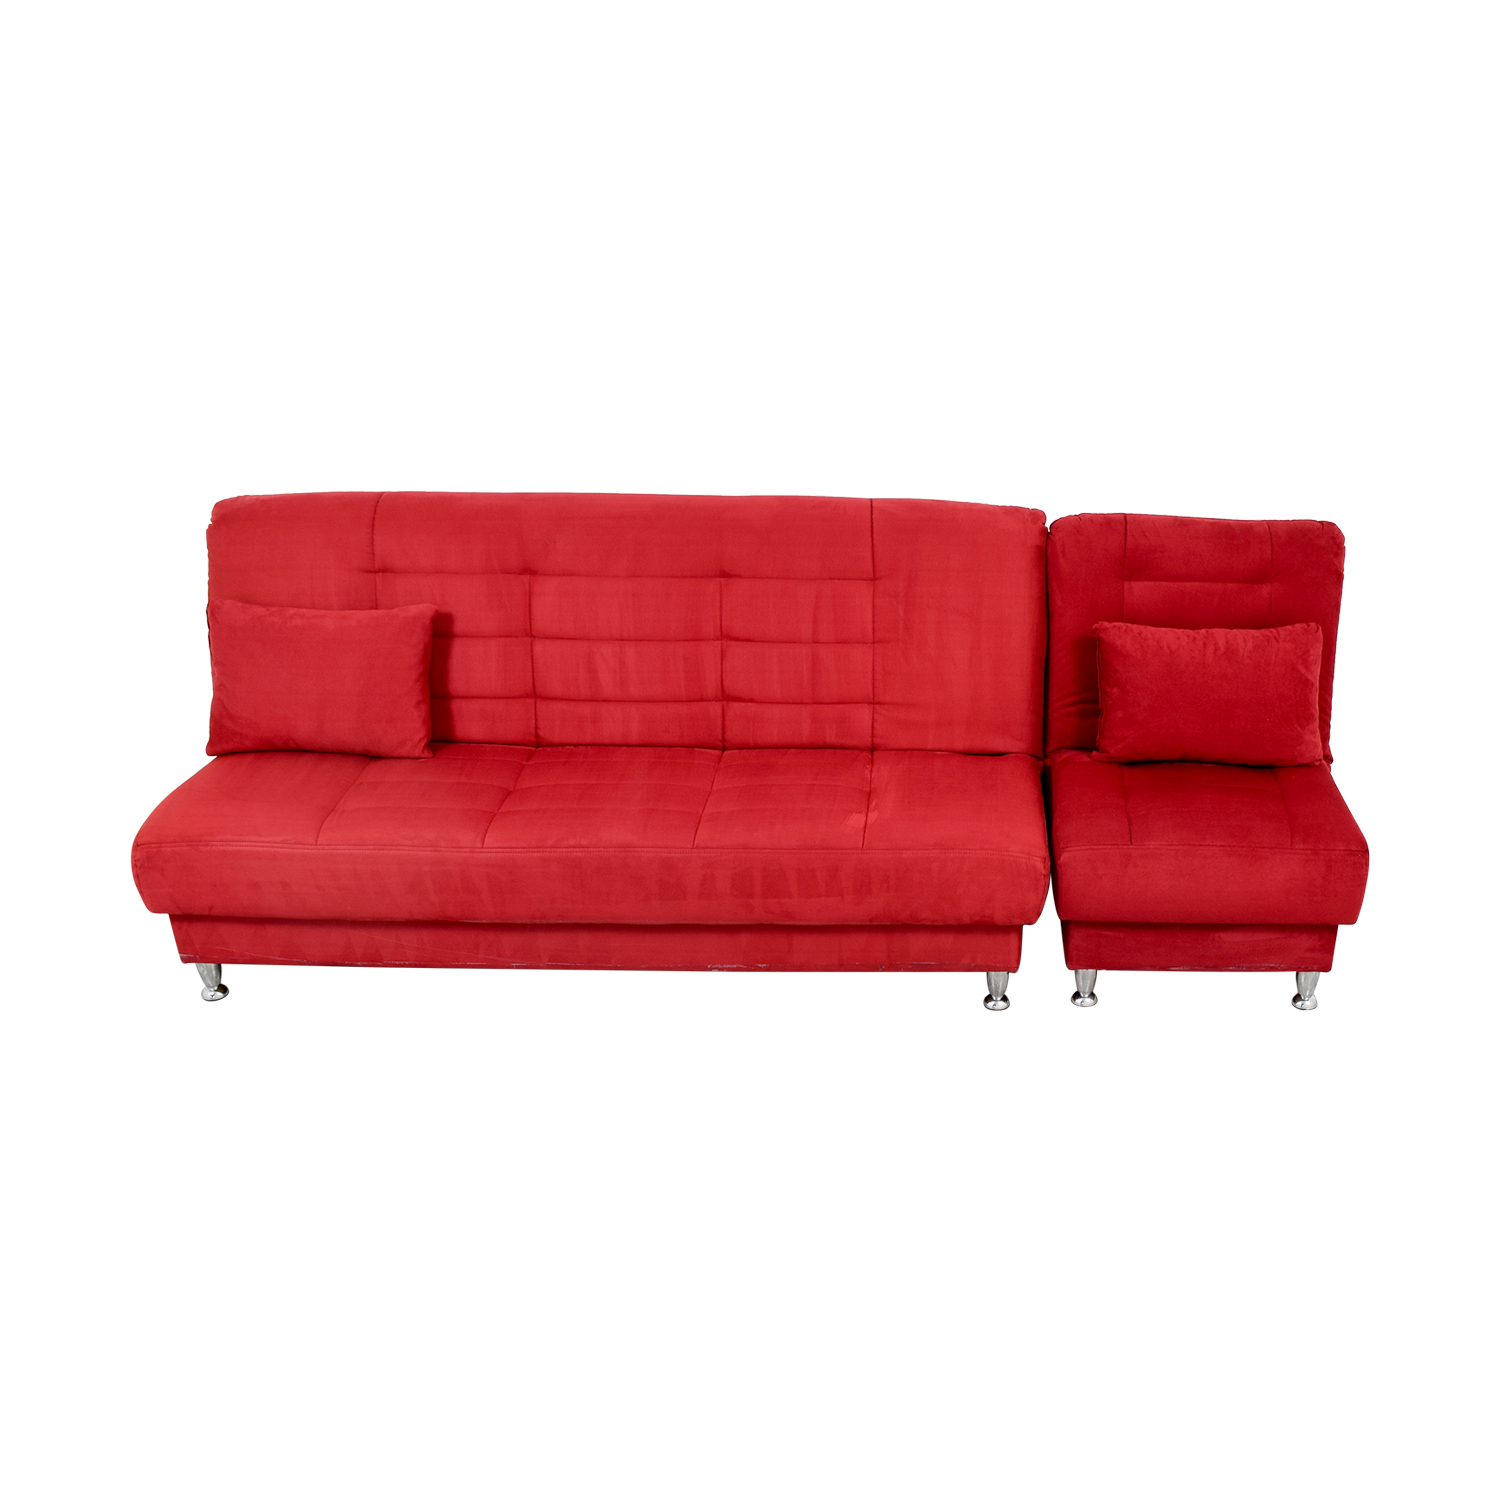 Latitude Red Sofa Bed with Storage Latitude